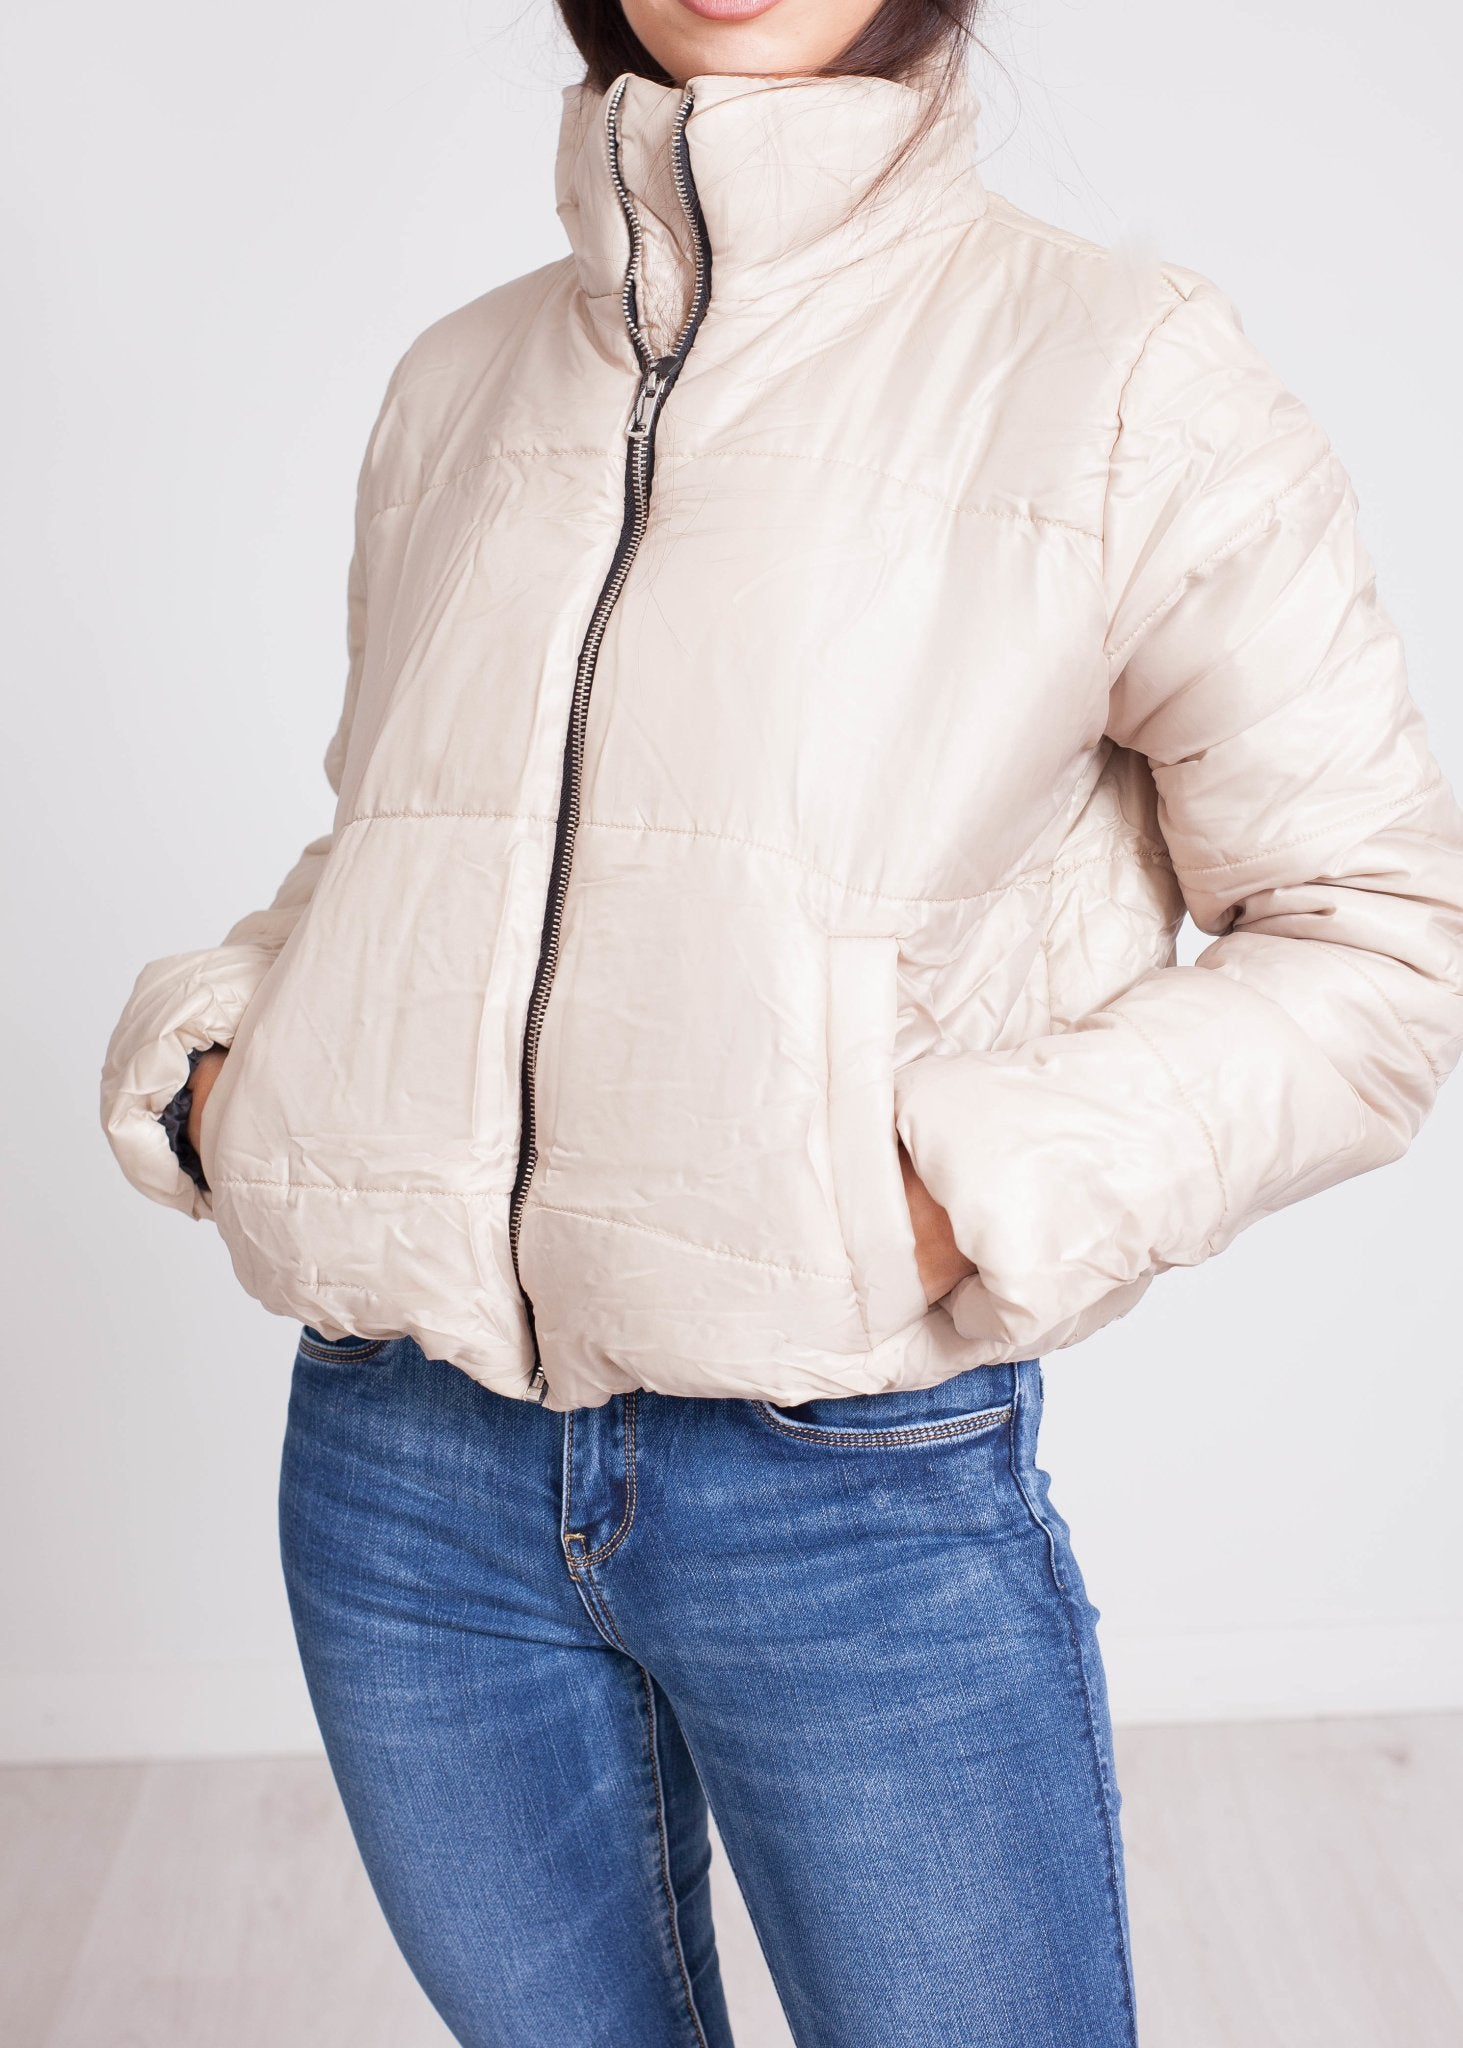 Jade Puffa Jacket In Stone - The Walk in Wardrobe